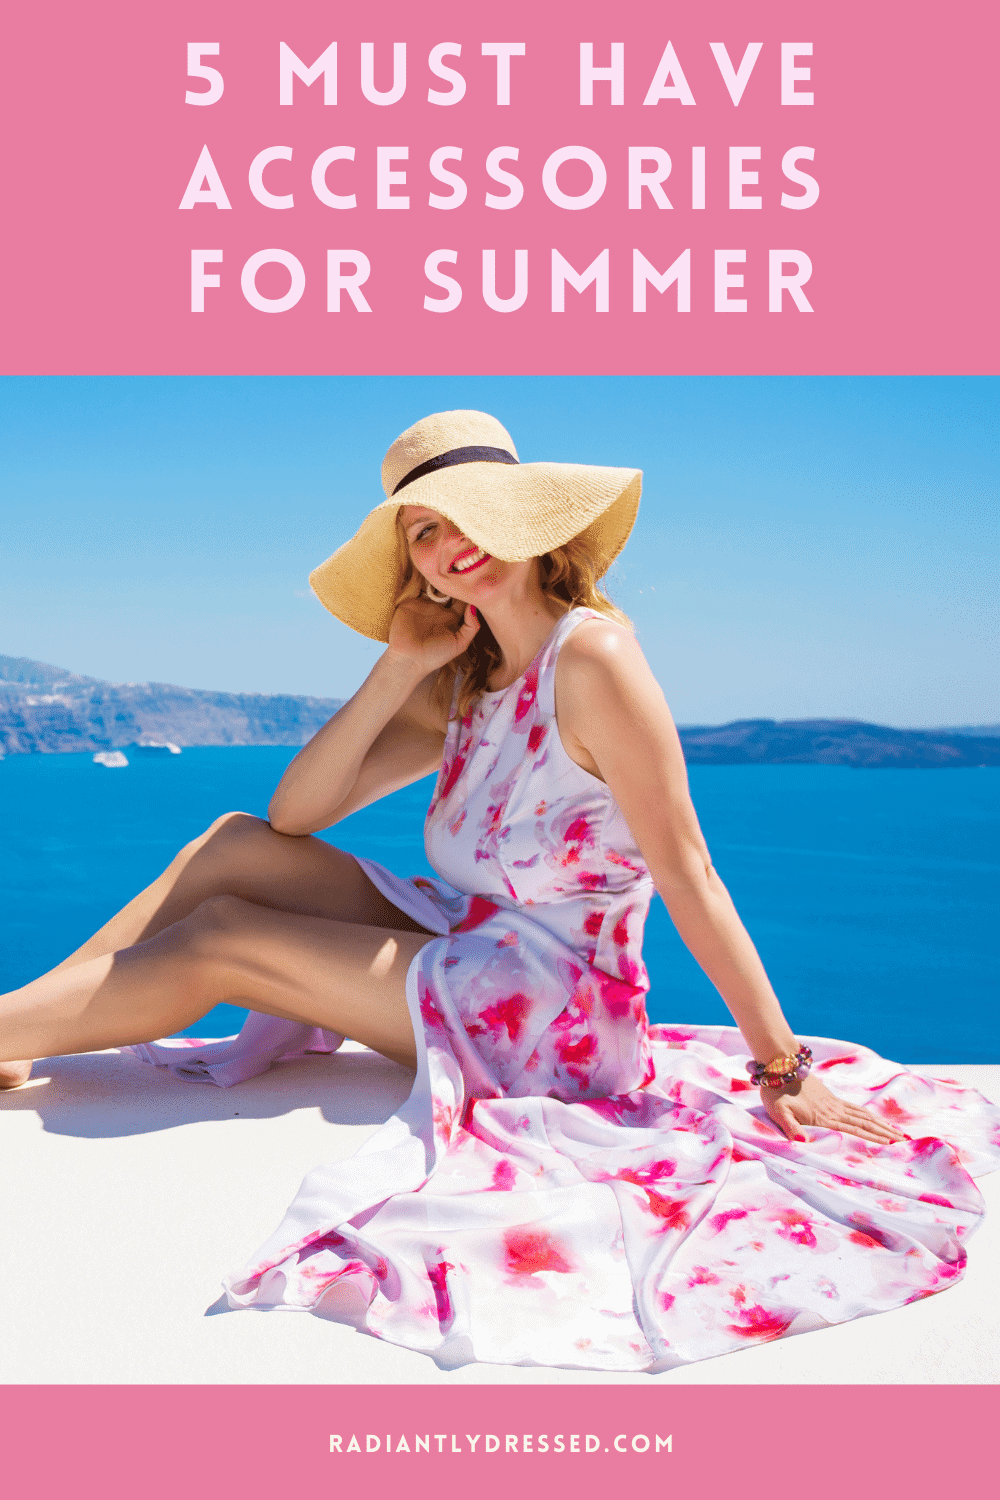 5 accessories for summer